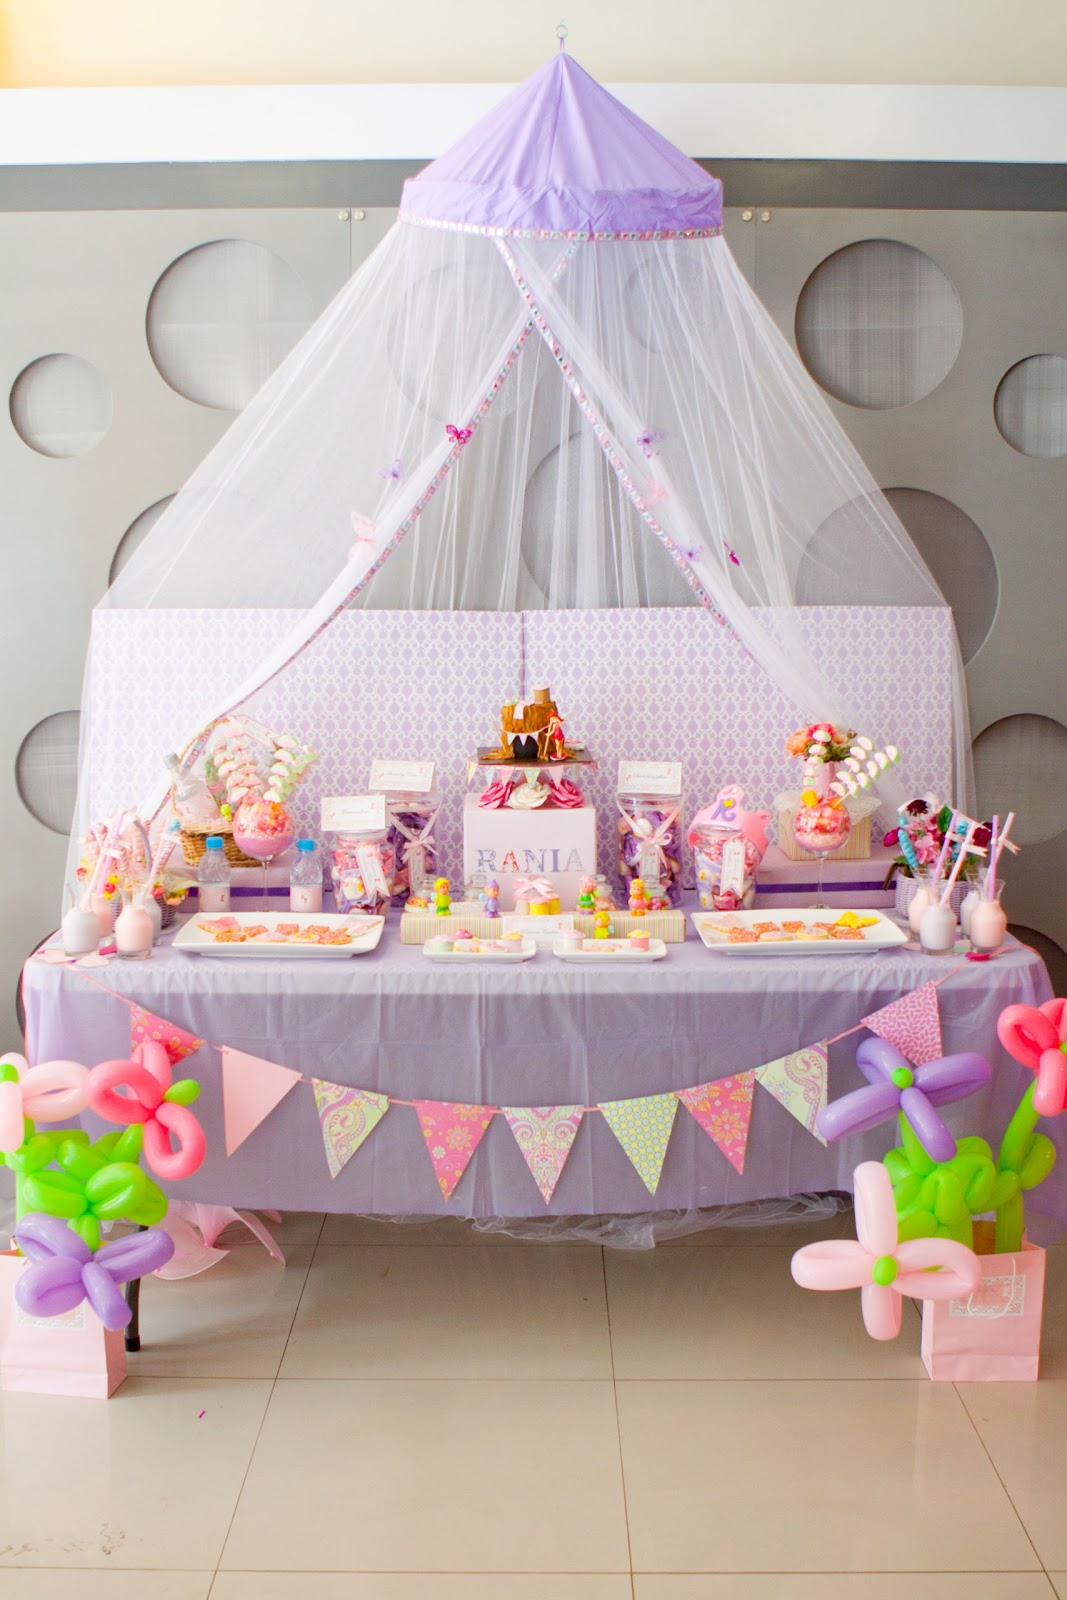 Pure Joy Events Link Party Showcase Fairies and Butterflies & Princess Birthday Cake Table ~ Image Inspiration of Cake and ...